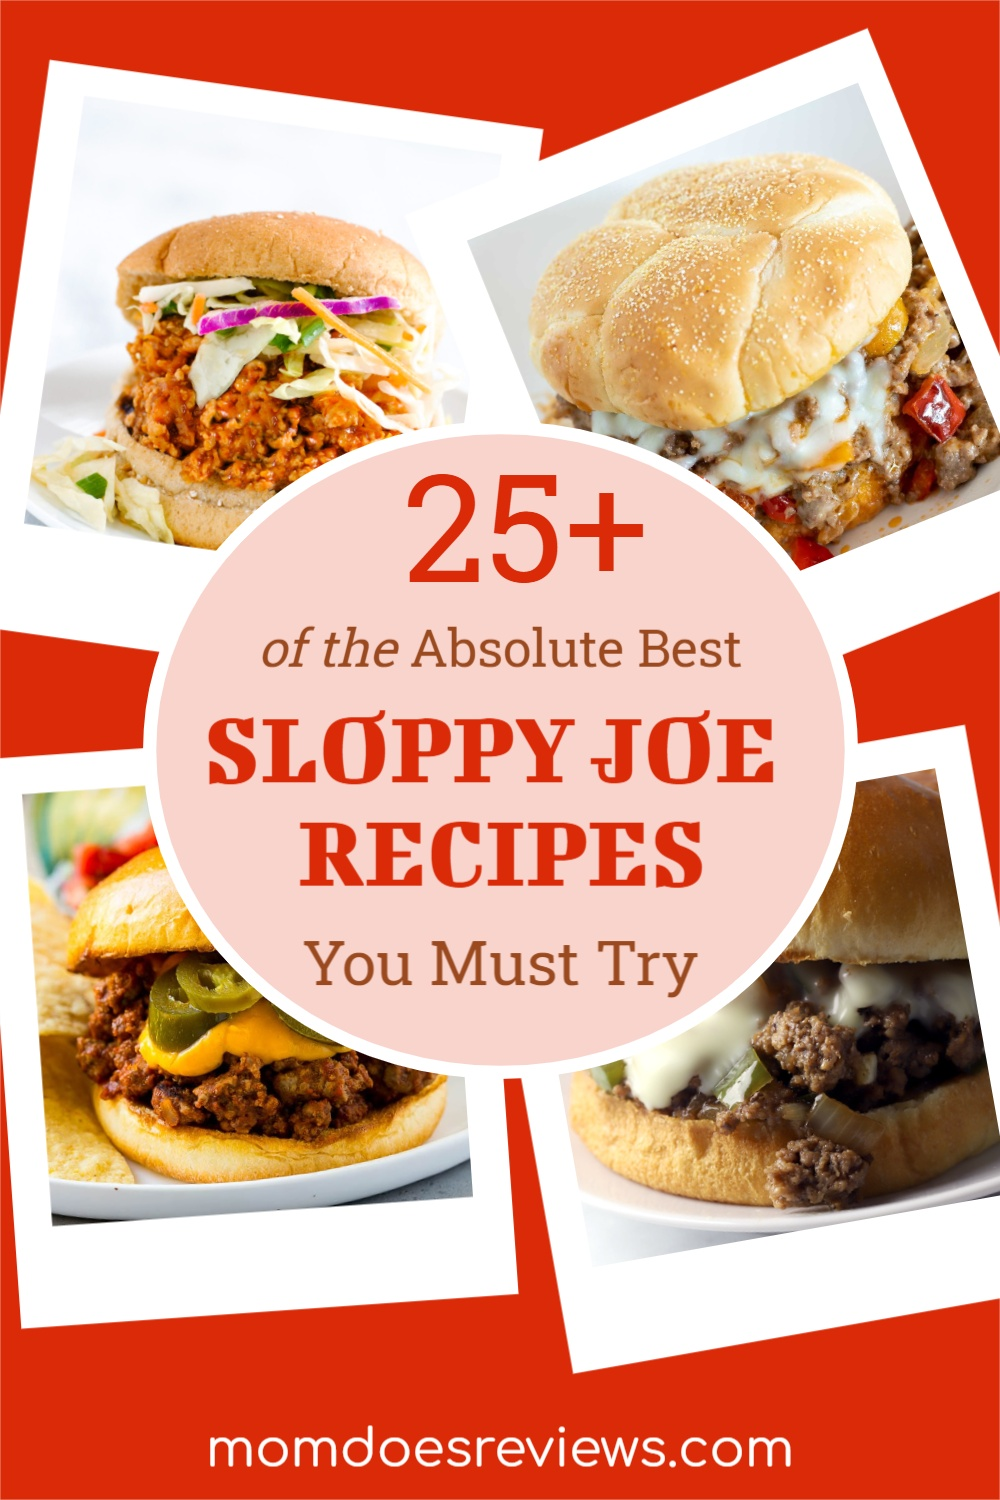 25+ of the Absolute Best Sloppy Joe Recipes You Must Try #recipes #sloppyjoes #familymeal